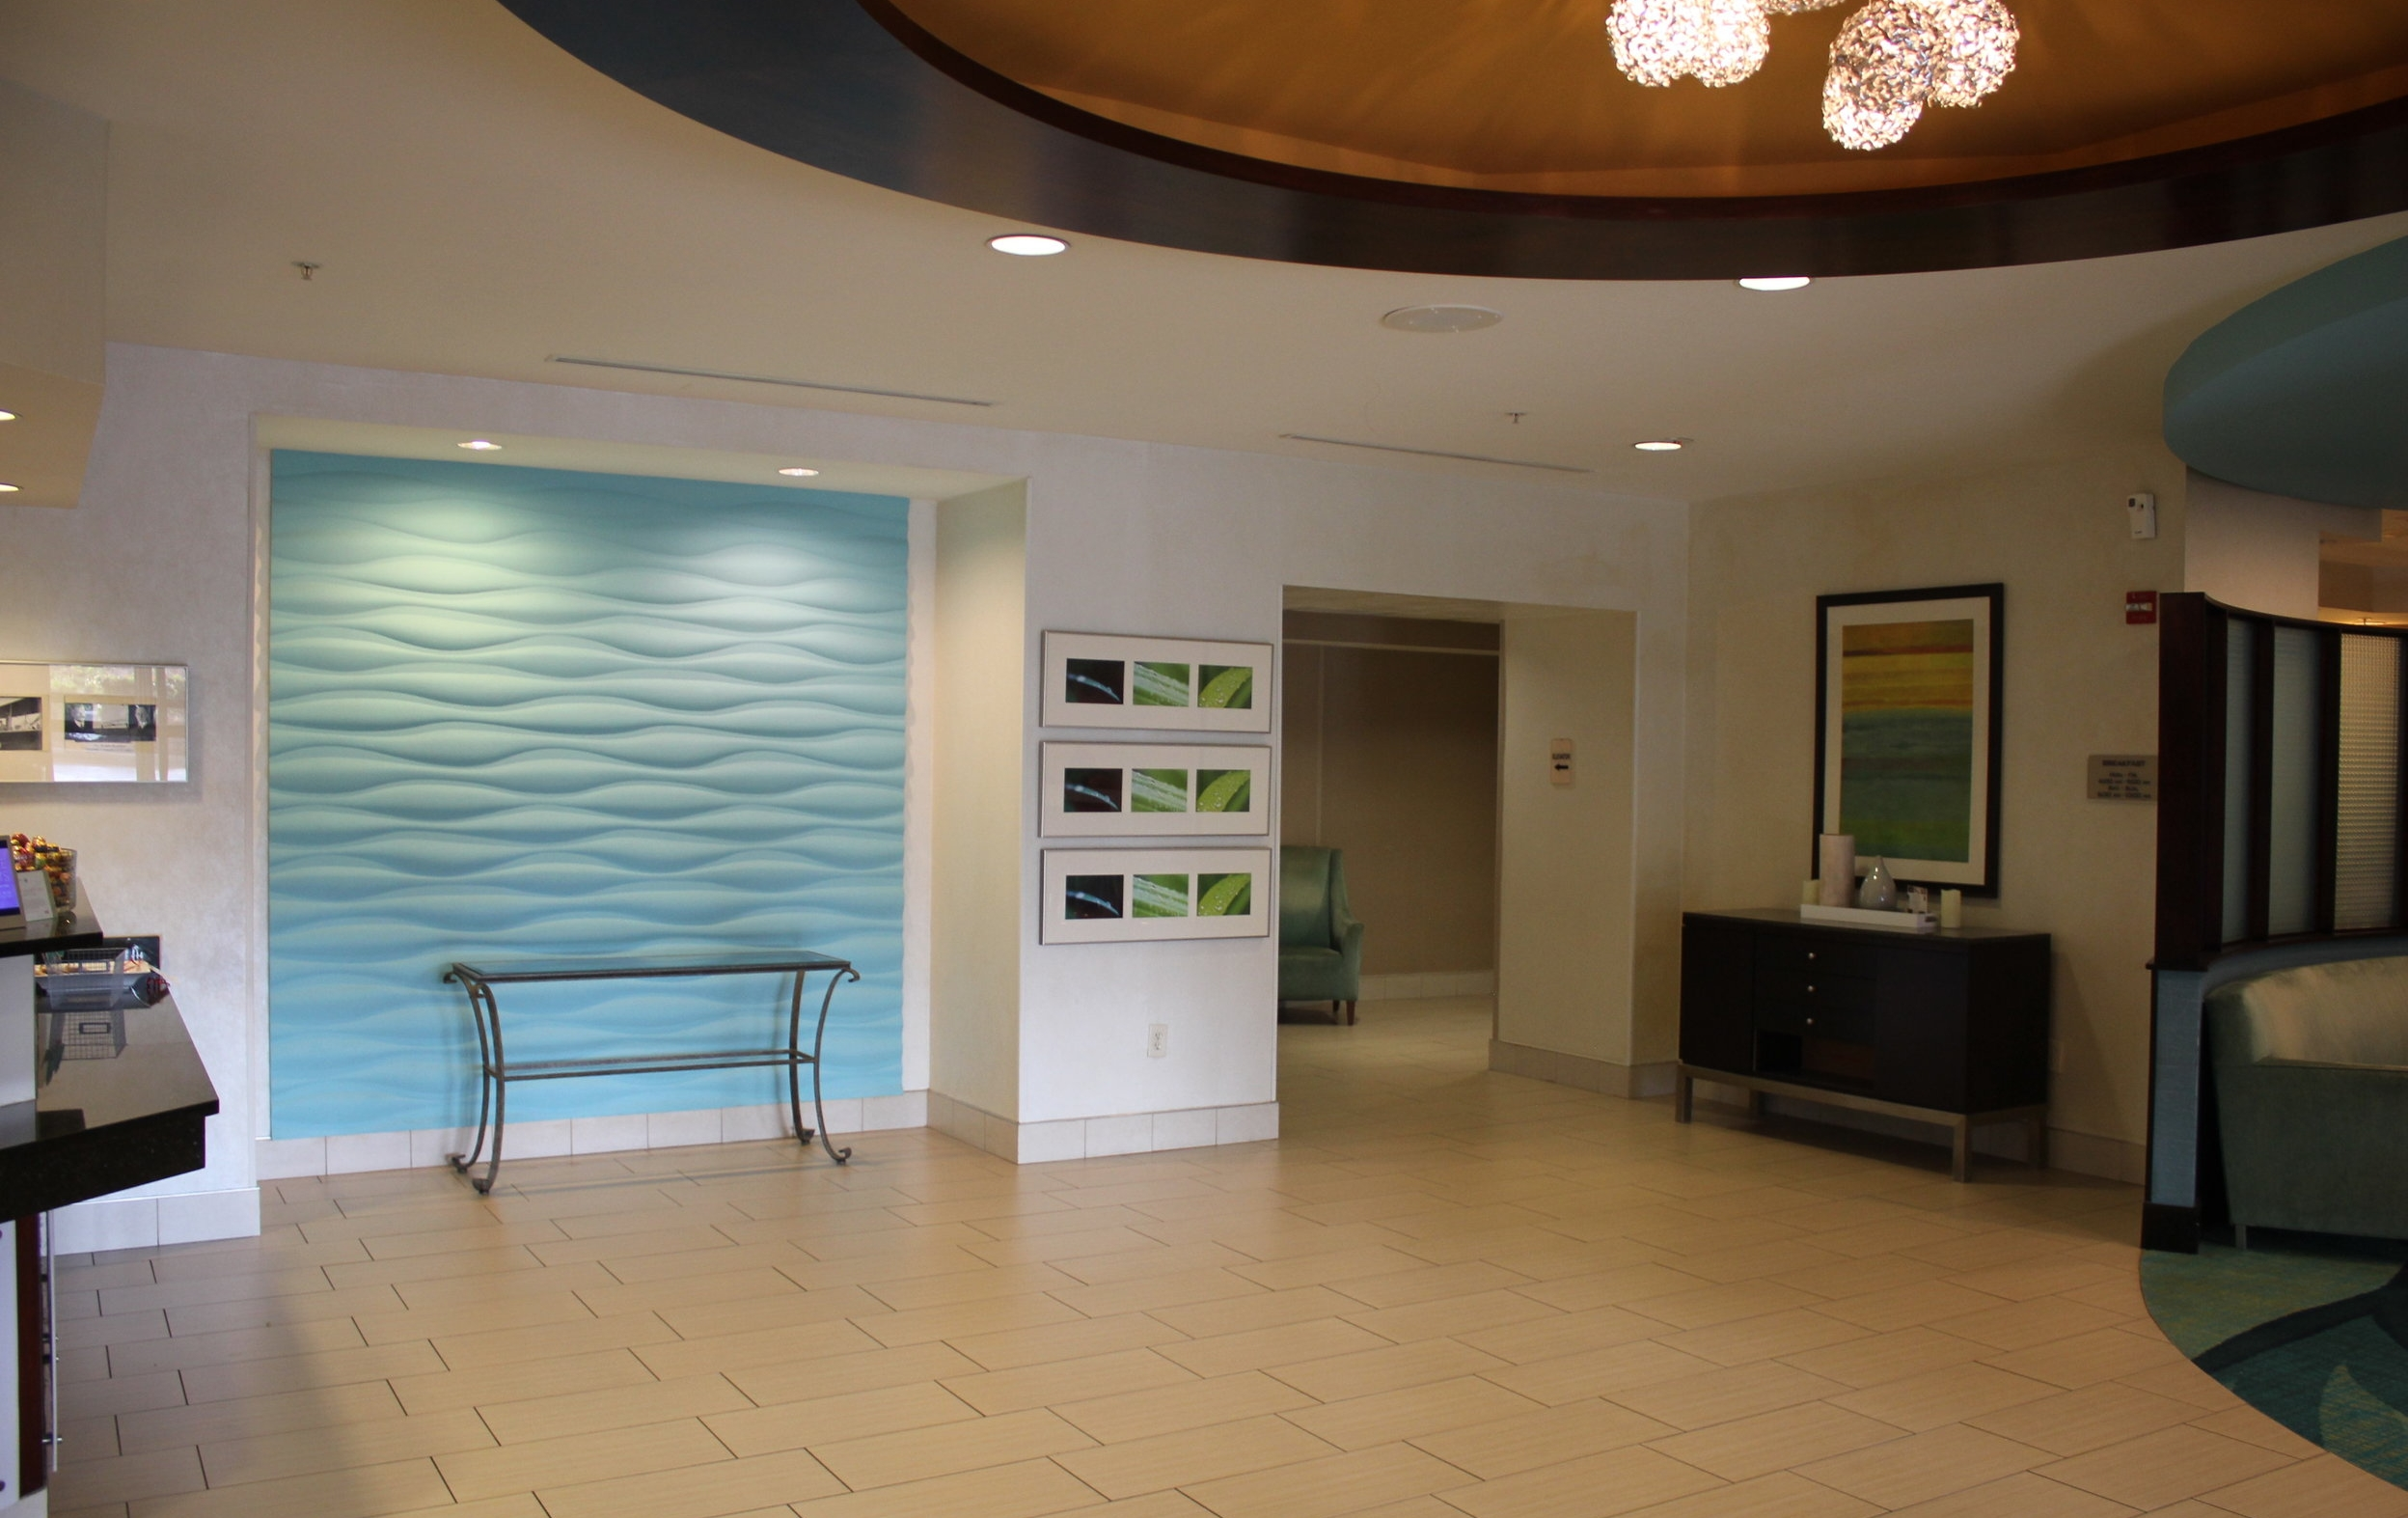 SpringHill Suites Charlotte Airport – Hotel lobby